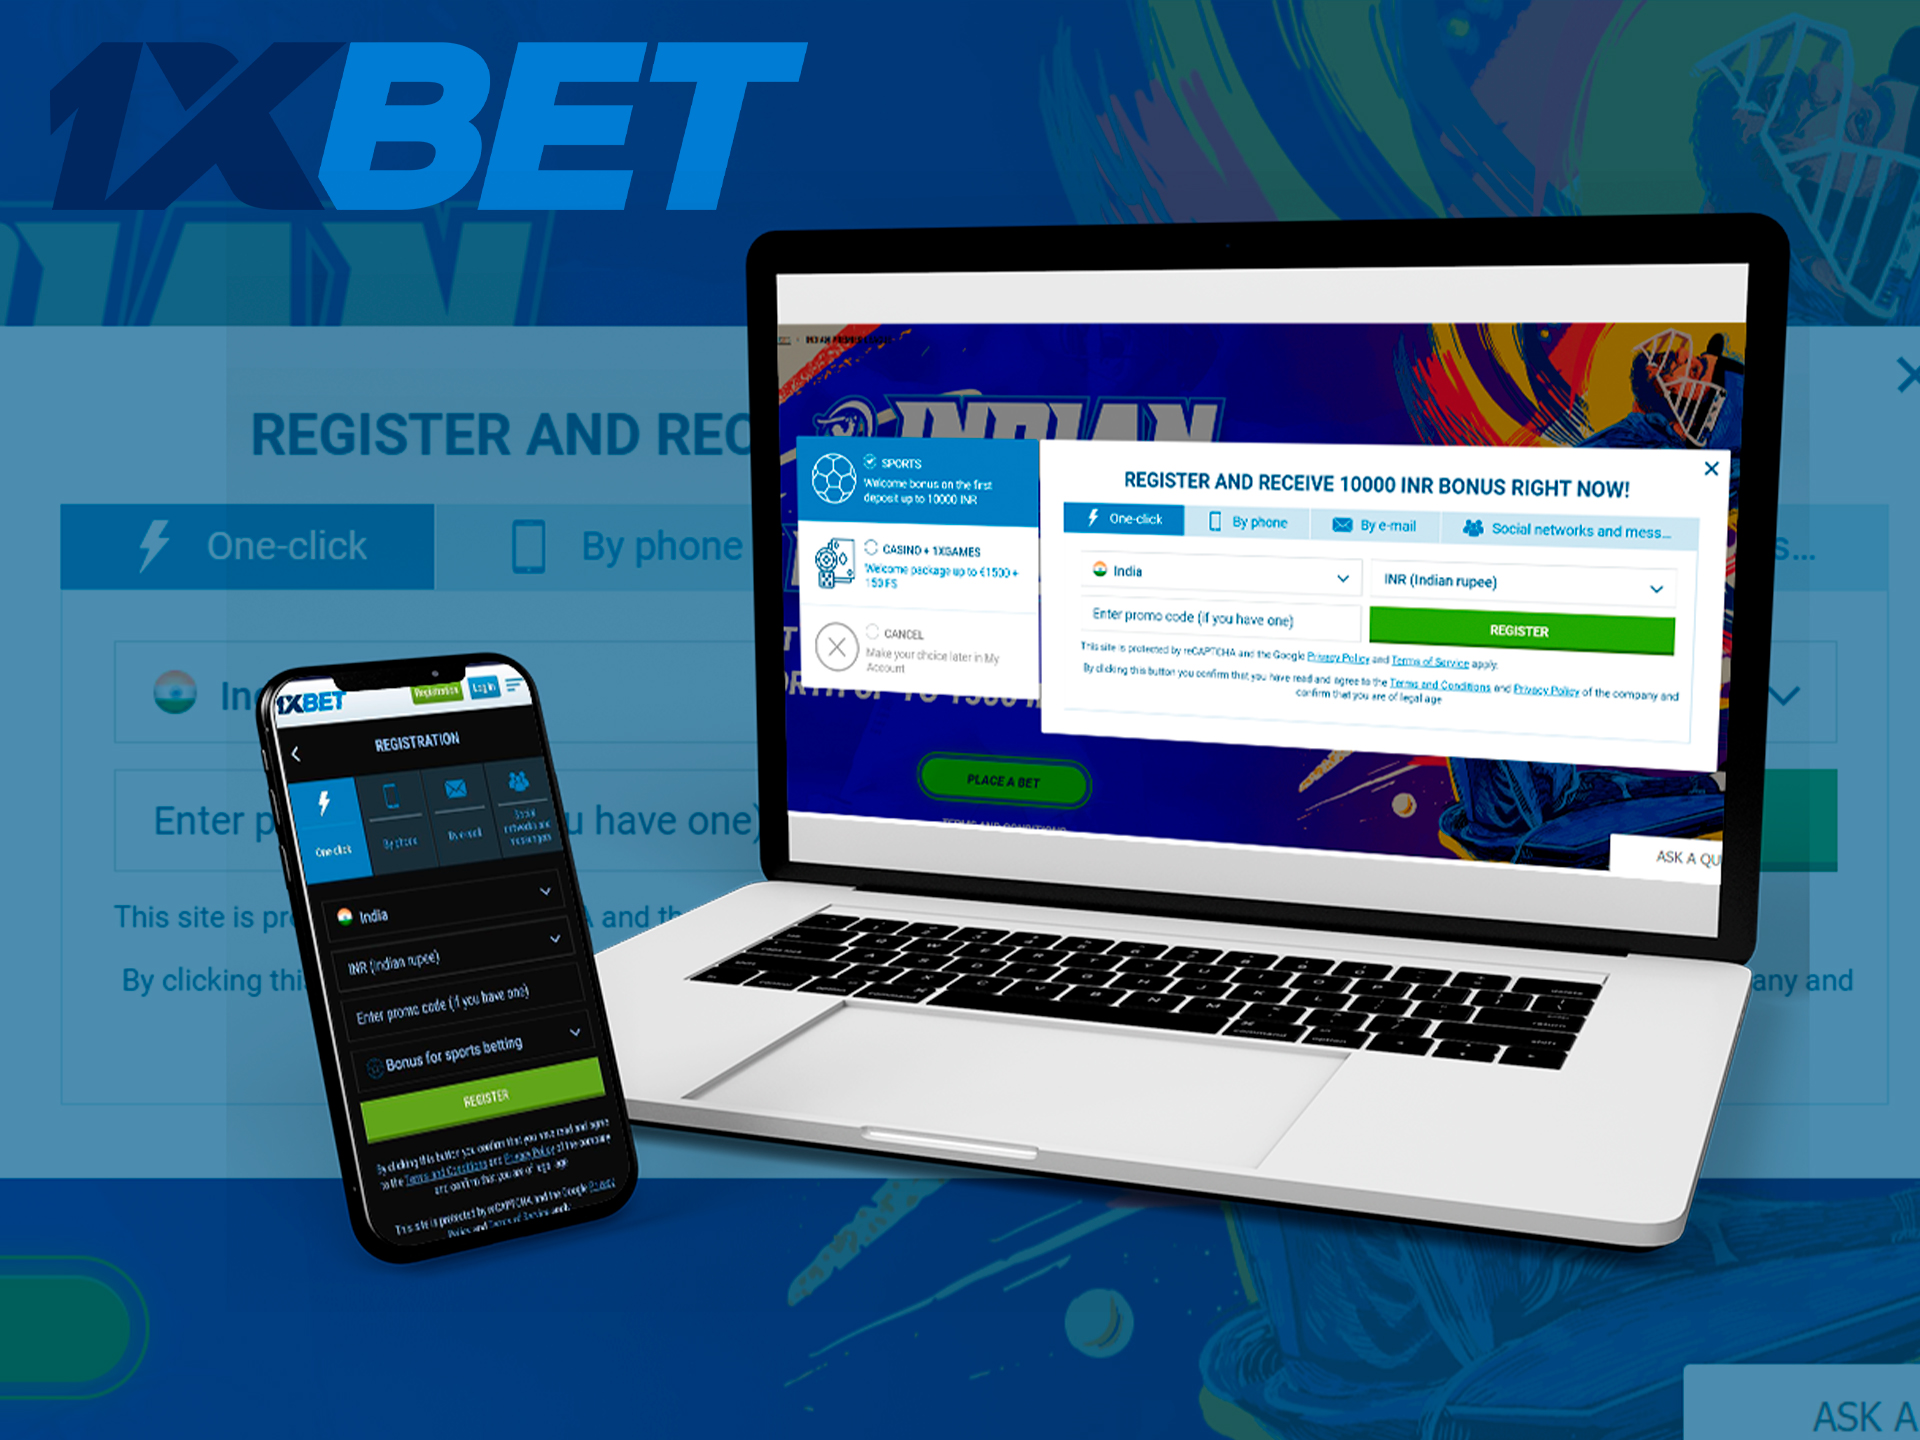 Step-by-step instructions for registering with 1xBet India.